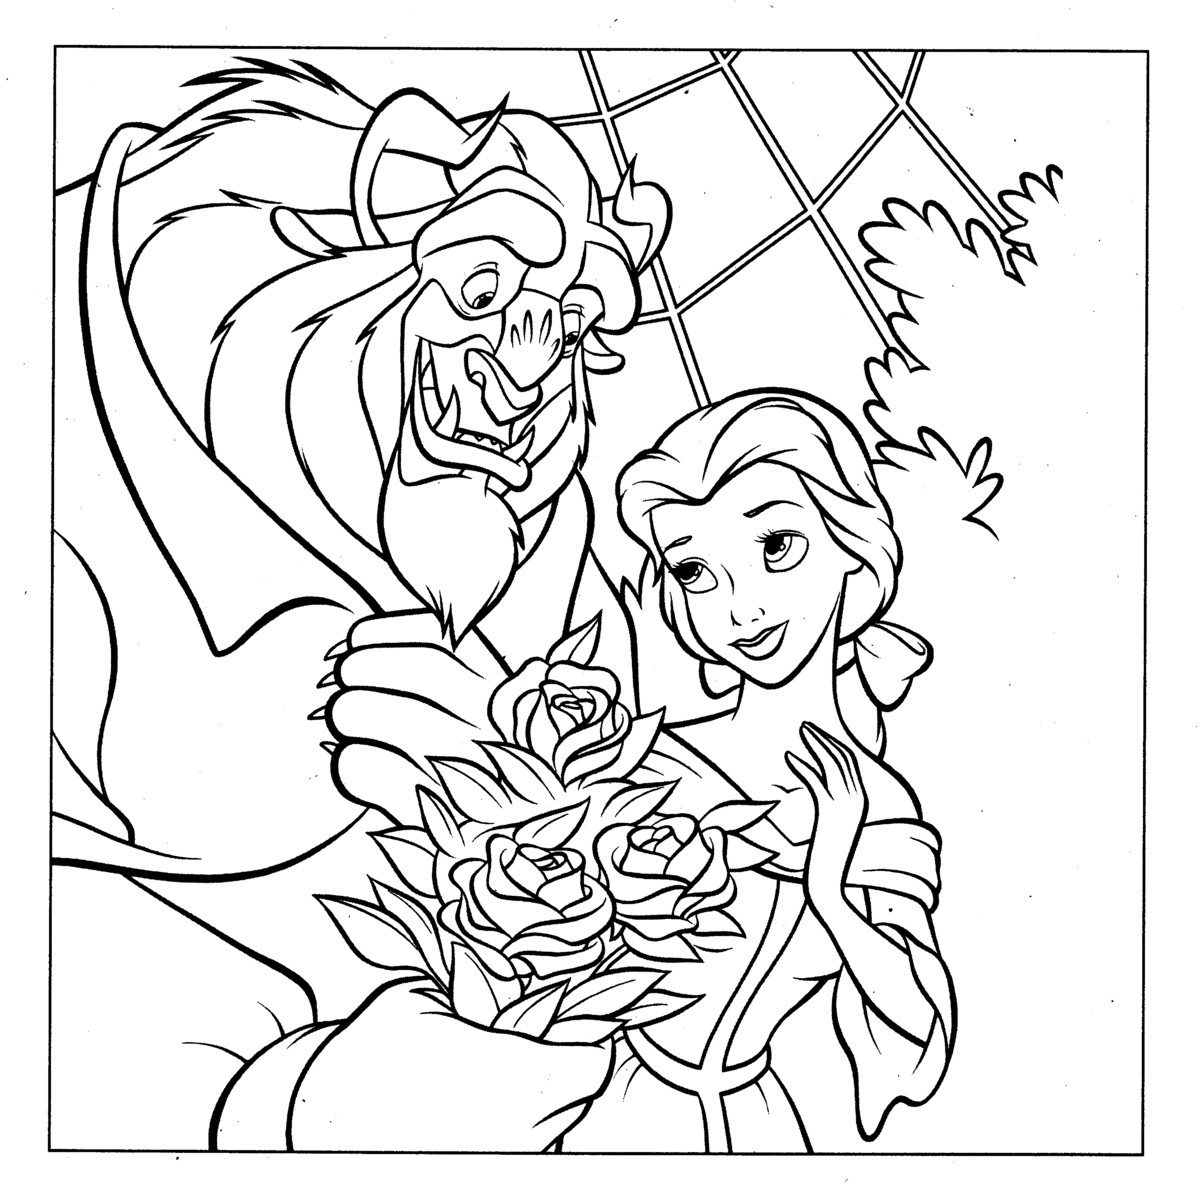 disney color pages disney characters drawings google search bear coloring disney color pages